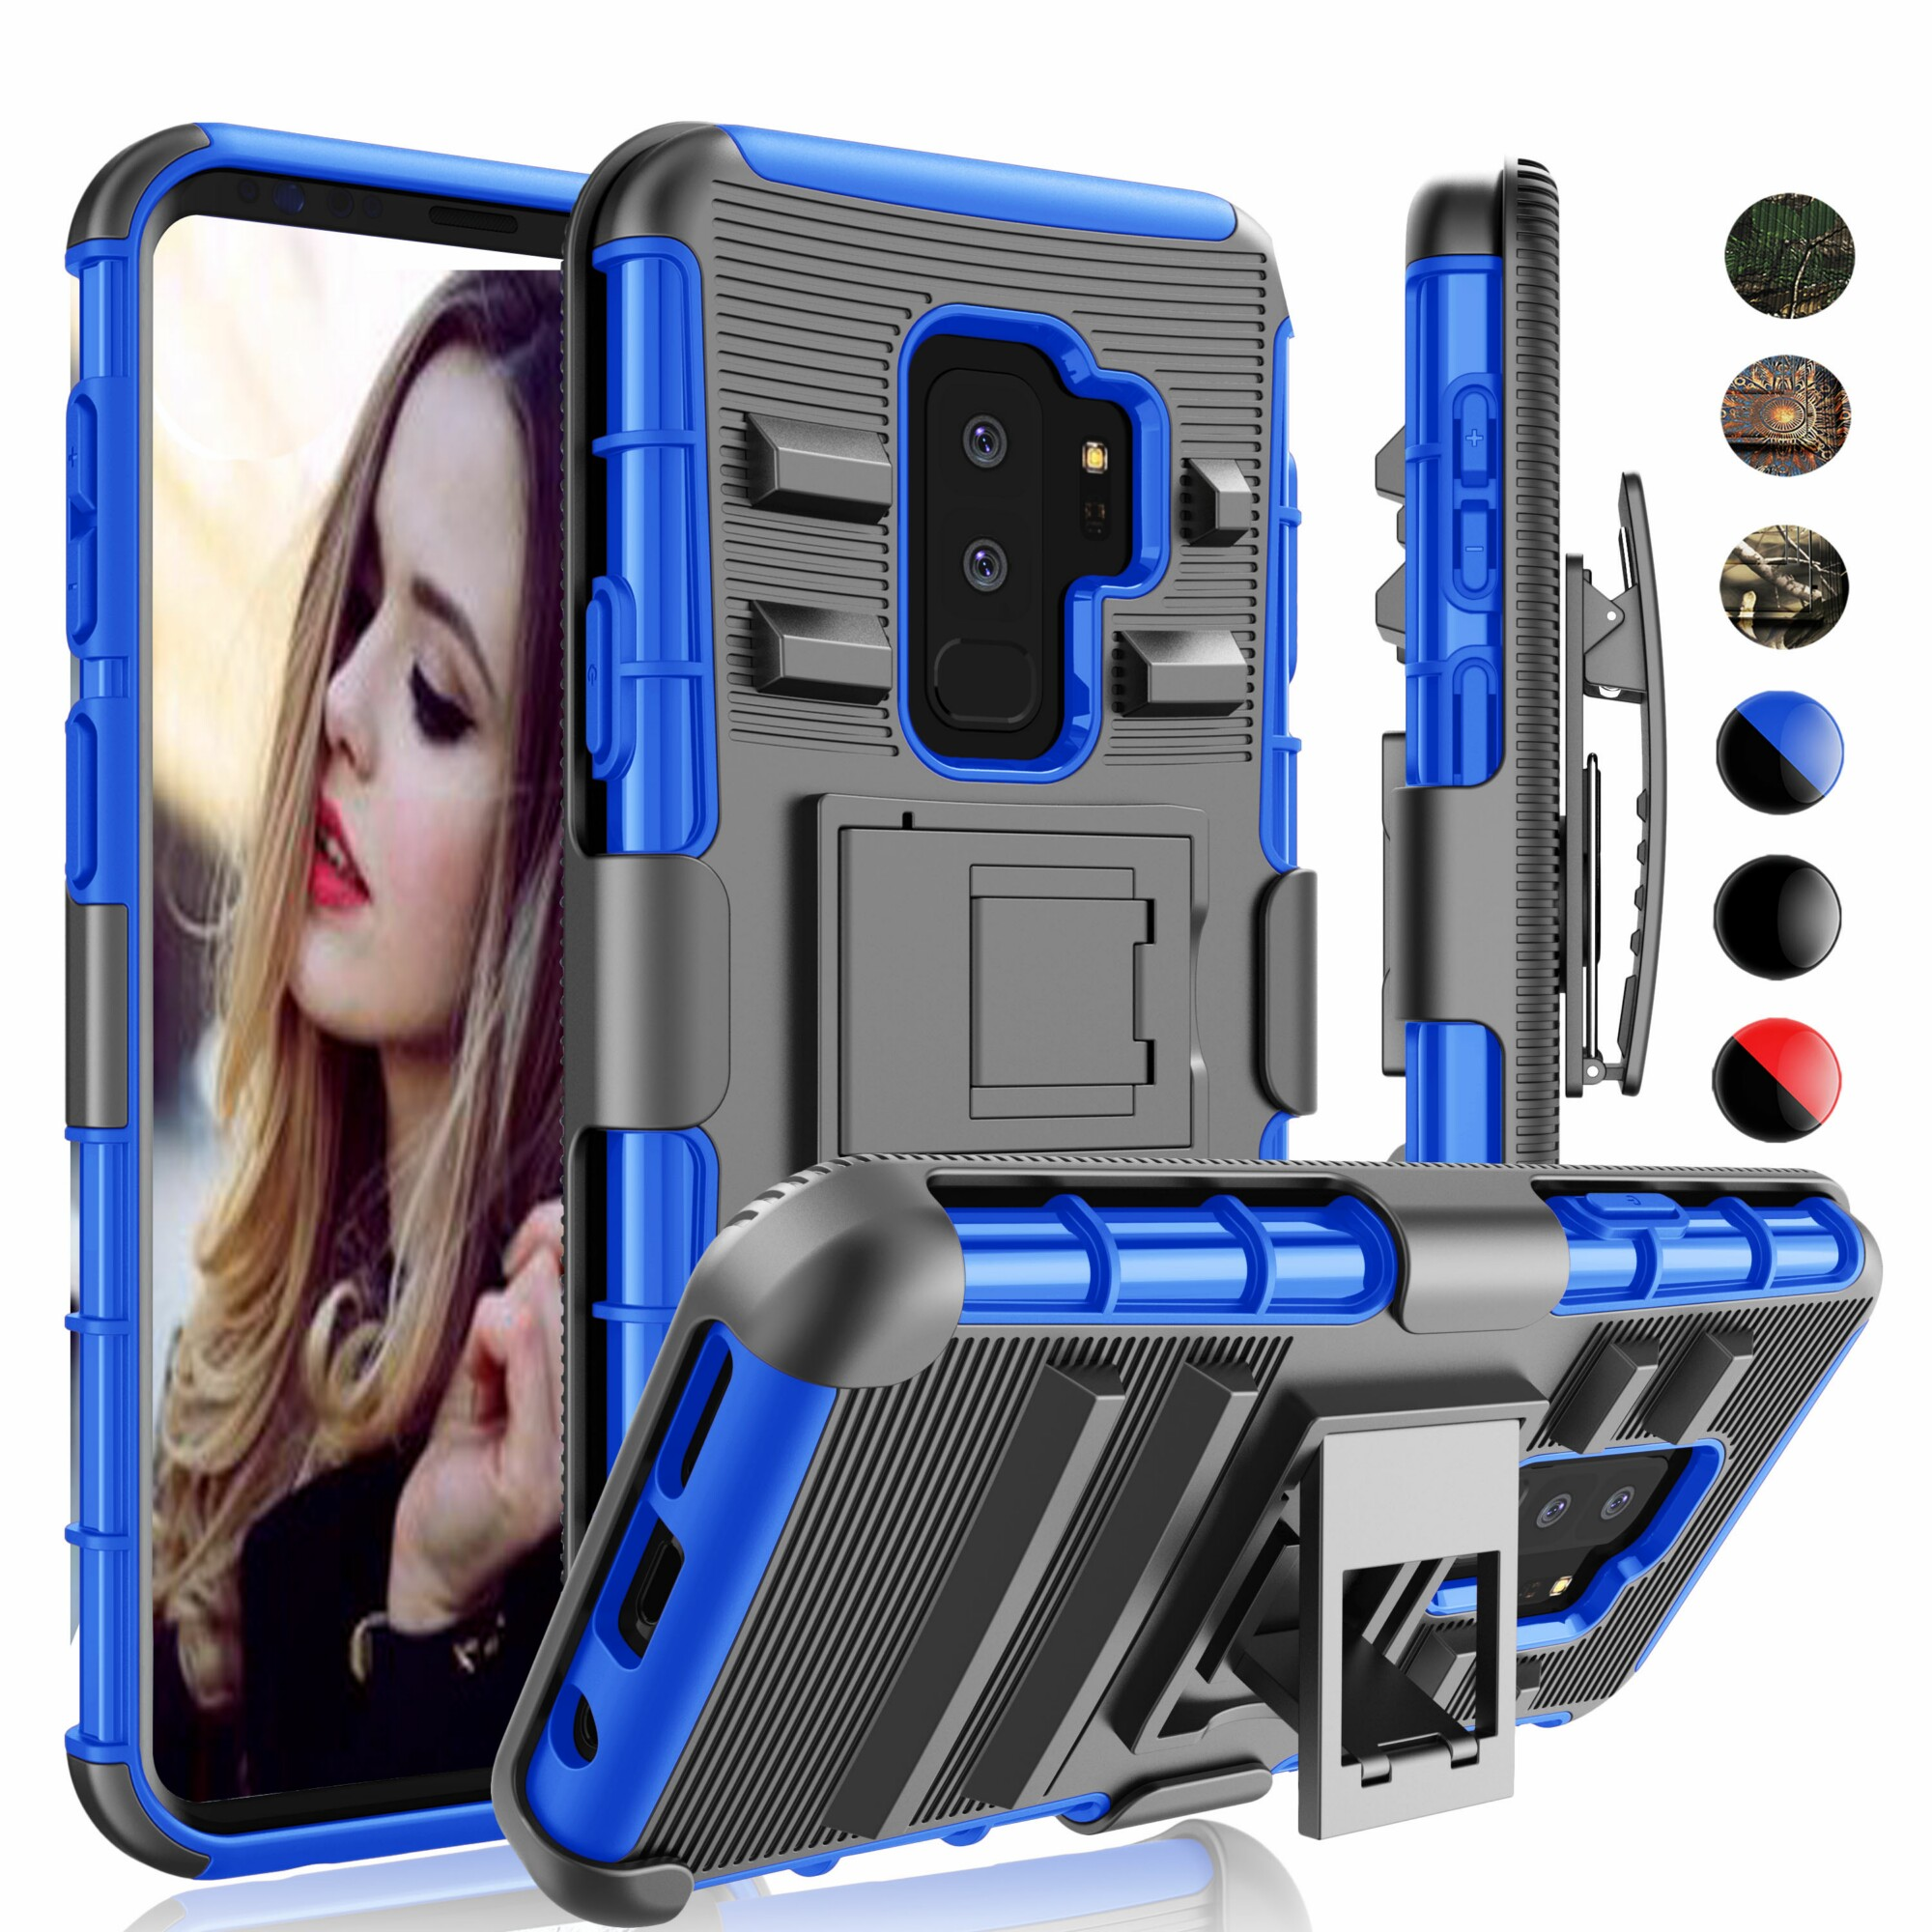 Samsung S9 Plus Case, Galaxy S9 Plus Clip, Galaxy S9 Sturdy Plus Cover, Njjex Shock Absorbing Holster Locking Belt Clip Buit in Kickstand Case Cover For Samsung Galaxy S9 Plus -Blue